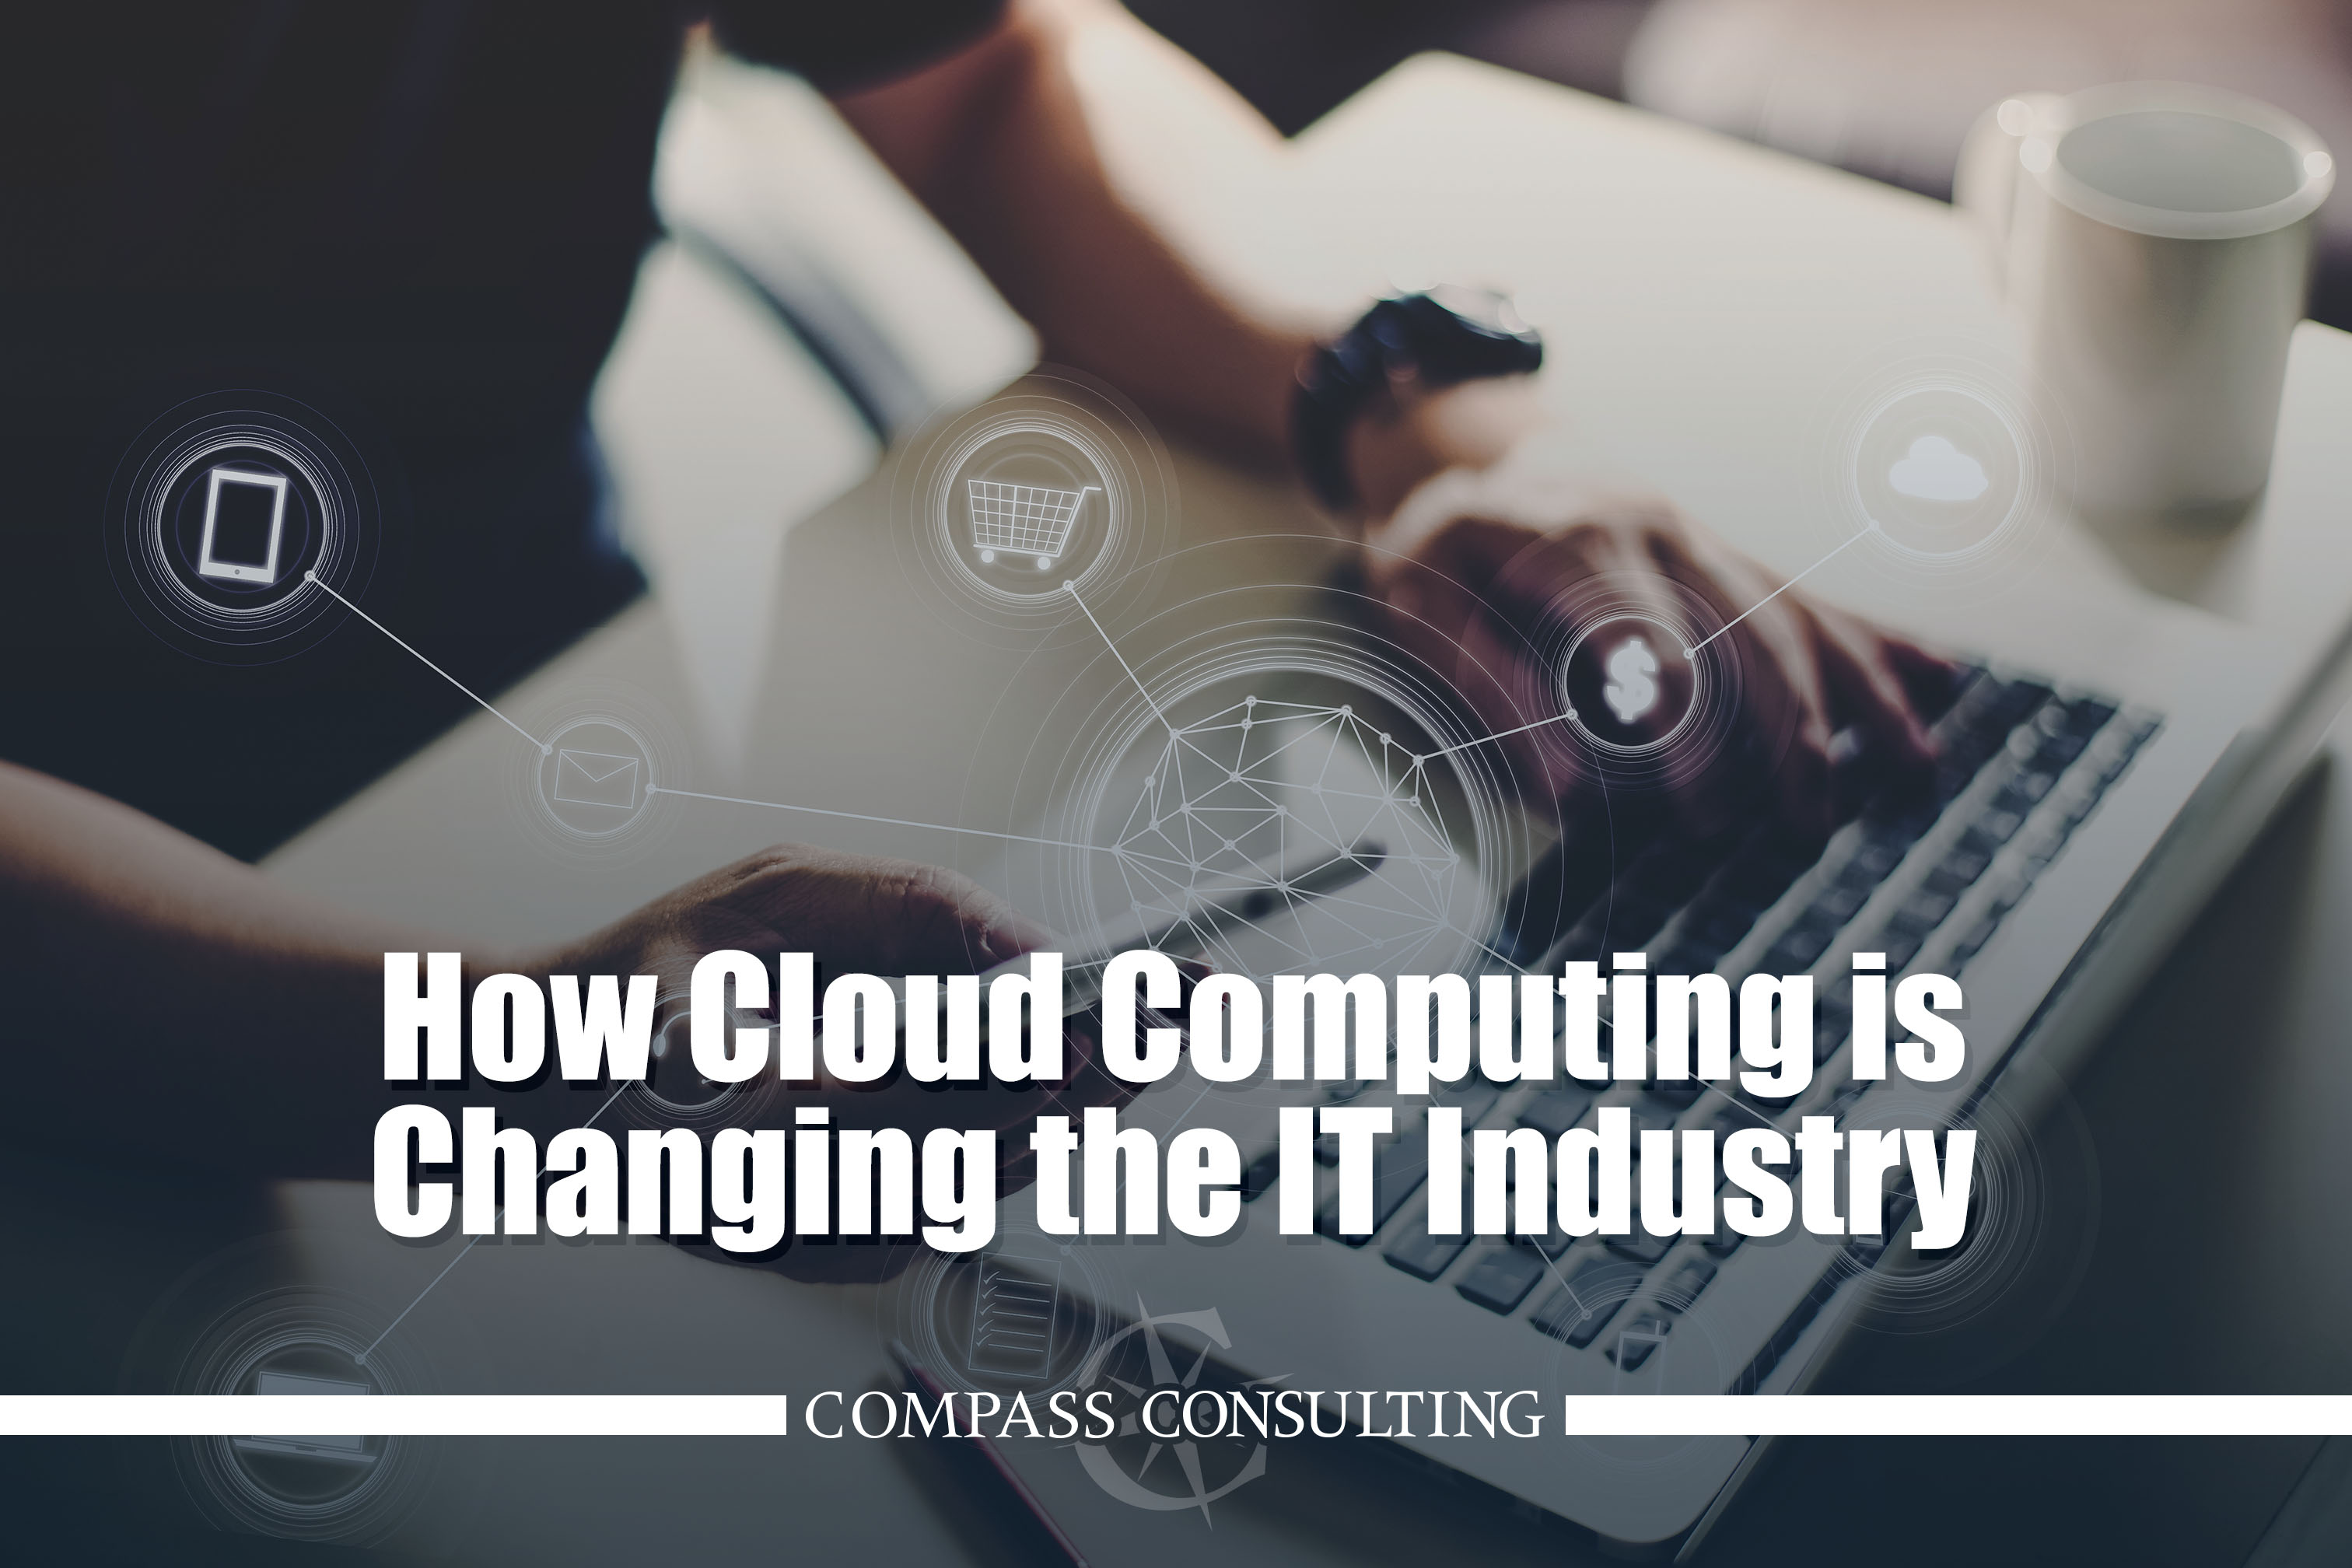 cloud computing changing the IT industry blog